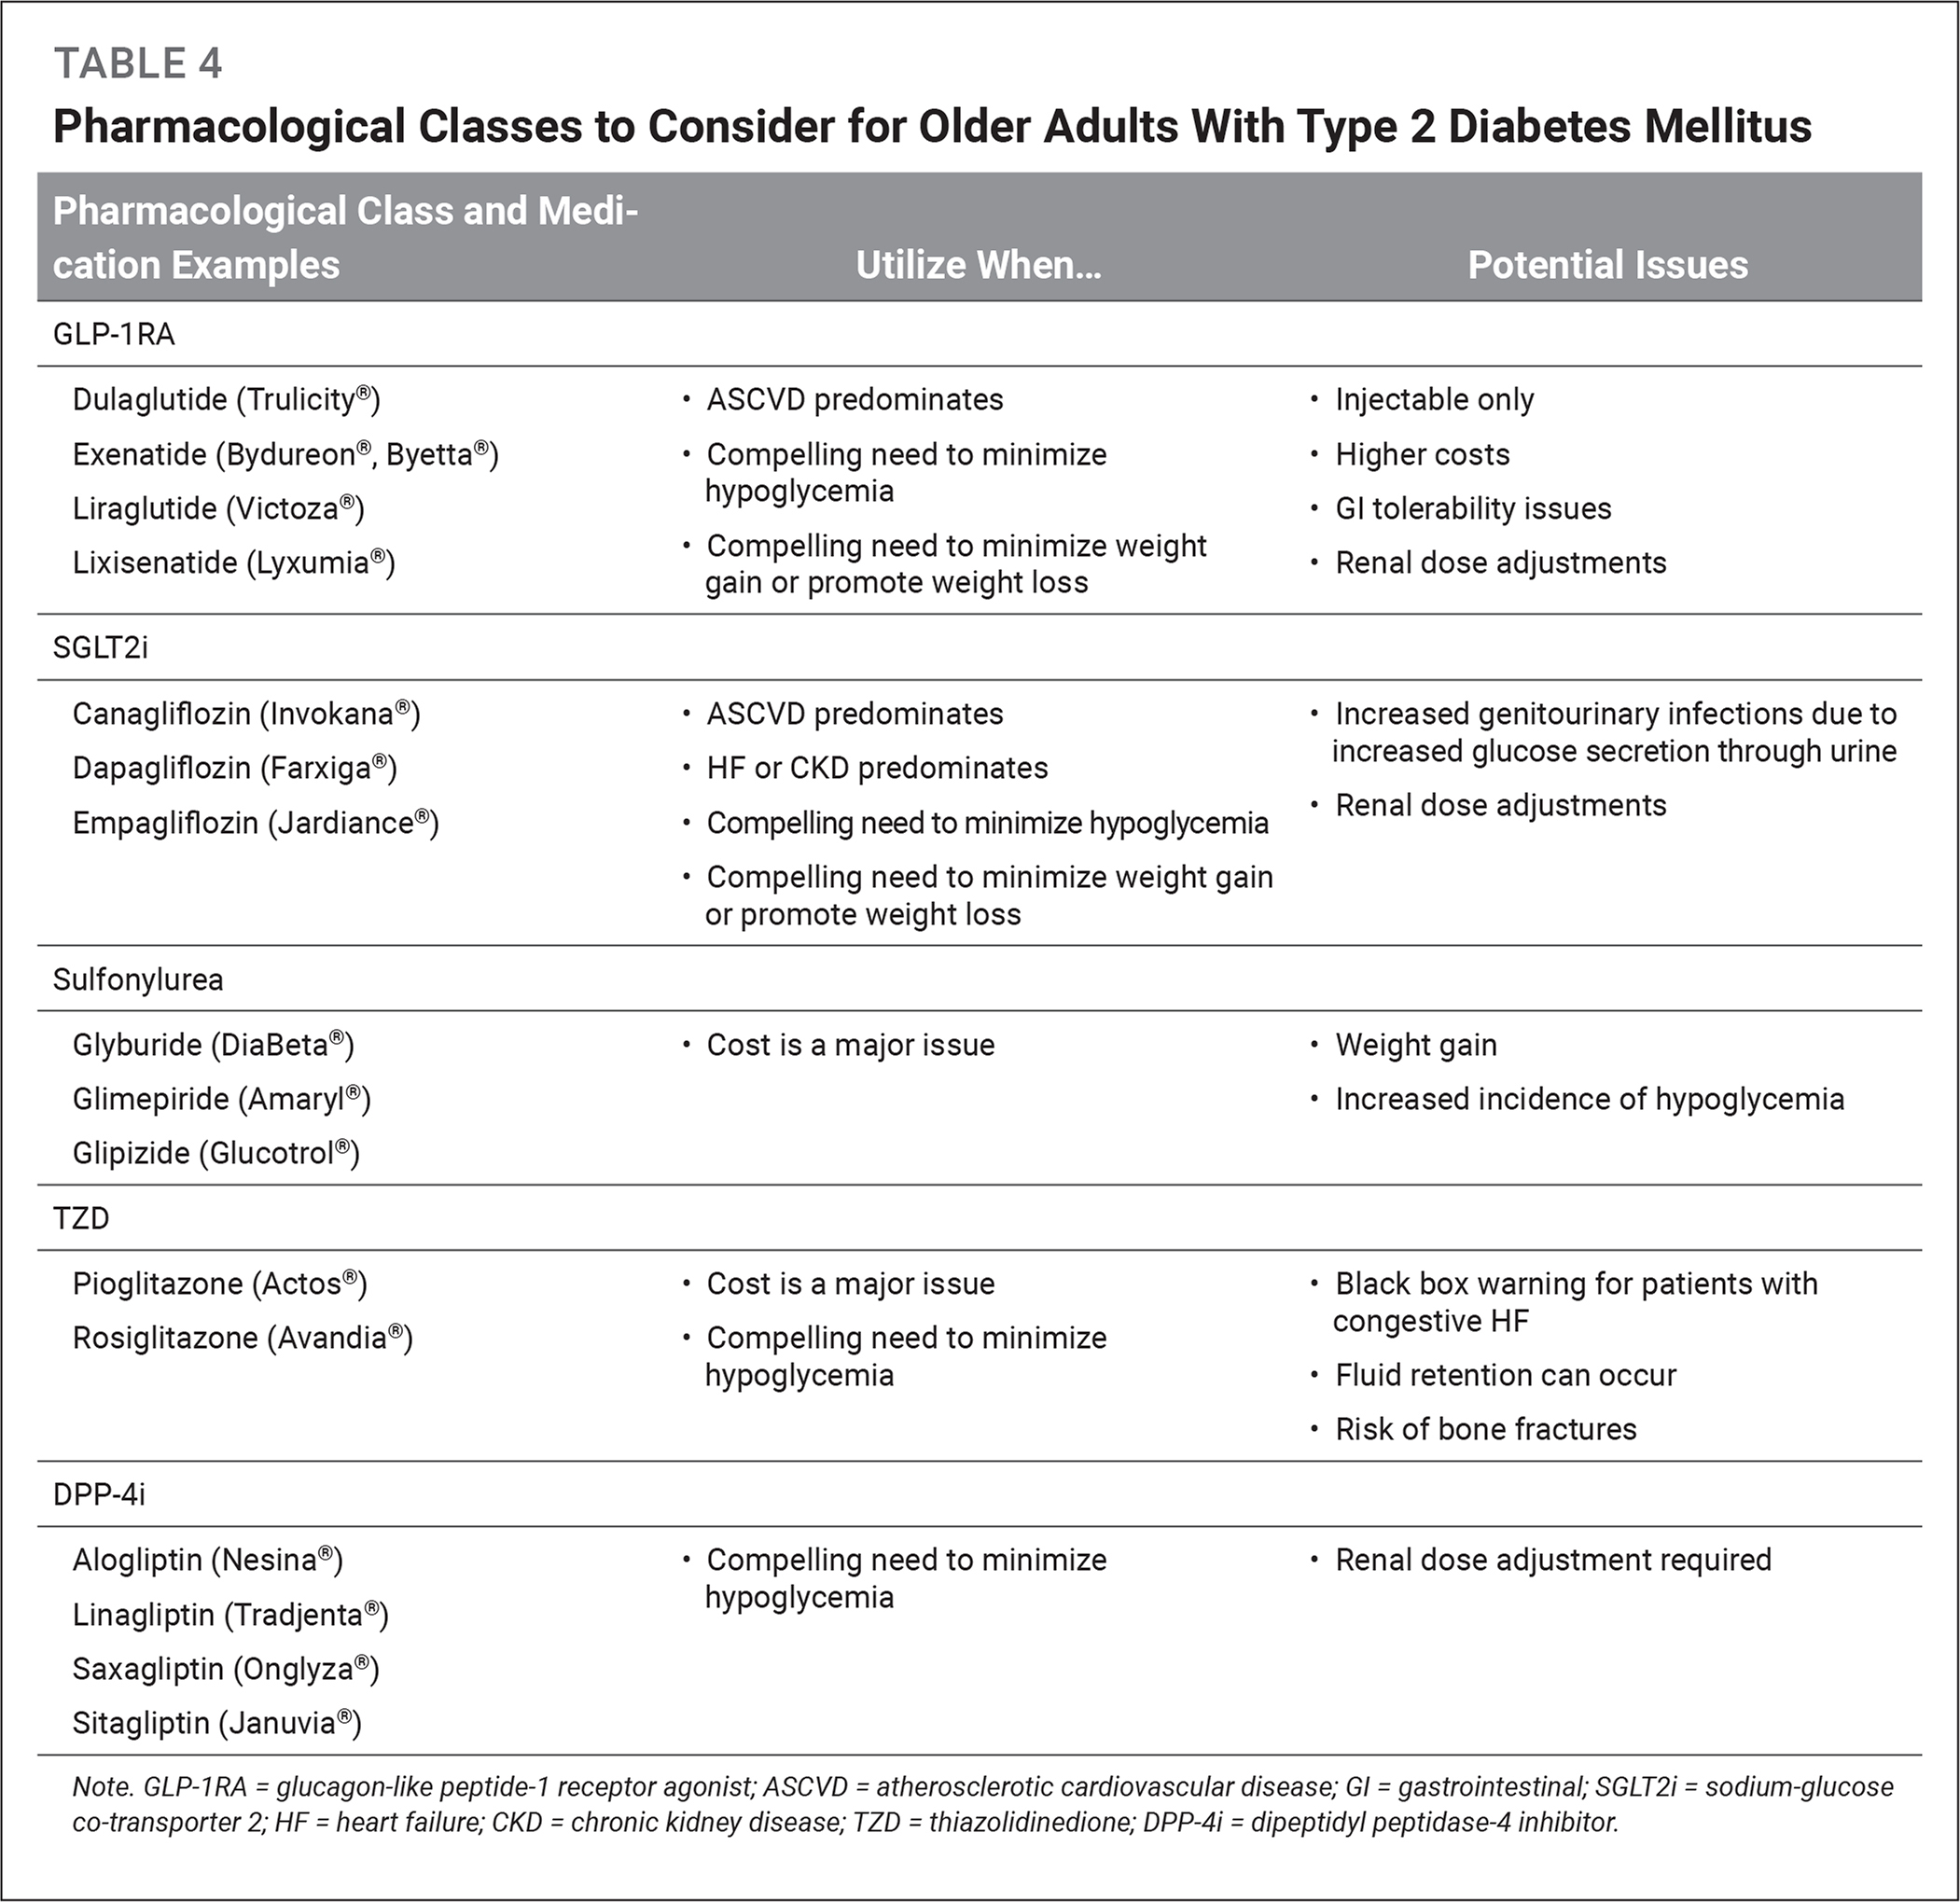 Pharmacological Classes to Consider for Older Adults With Type 2 Diabetes Mellitus